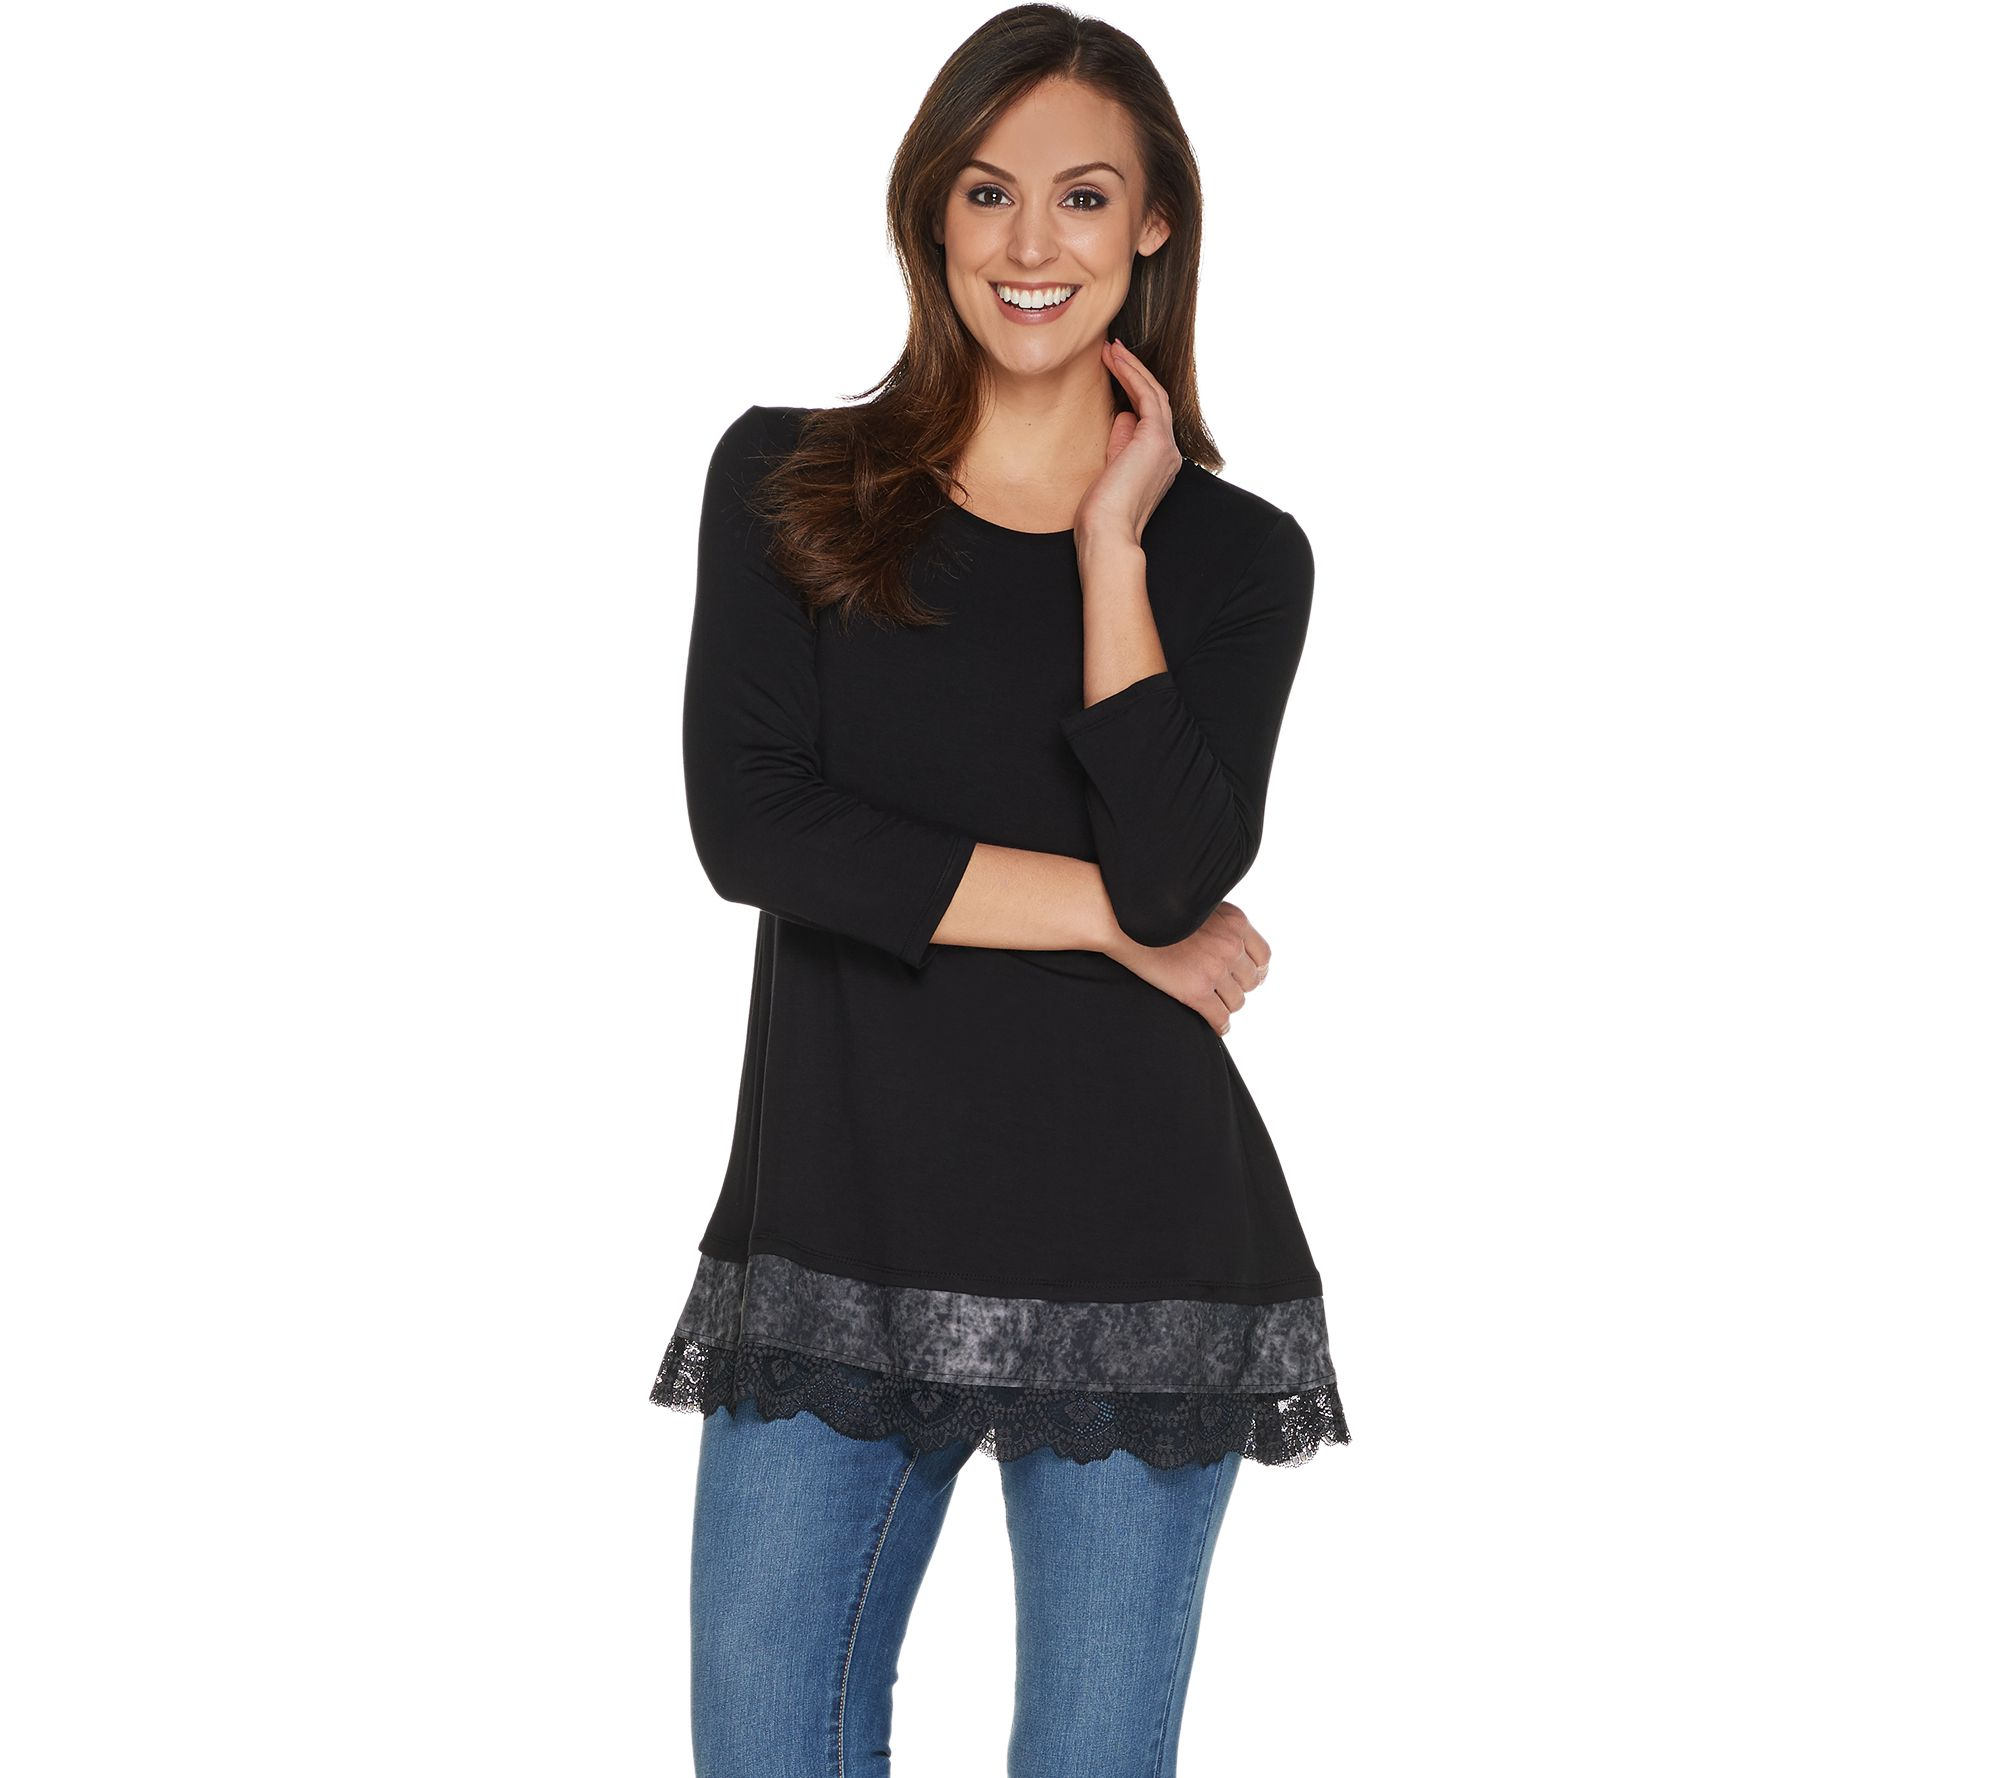 03ec055ff03 LOGO by Lori Goldstein 3 4 Sleeve Knit Top w  Woven and Lace Trim - Page 1  — QVC.com